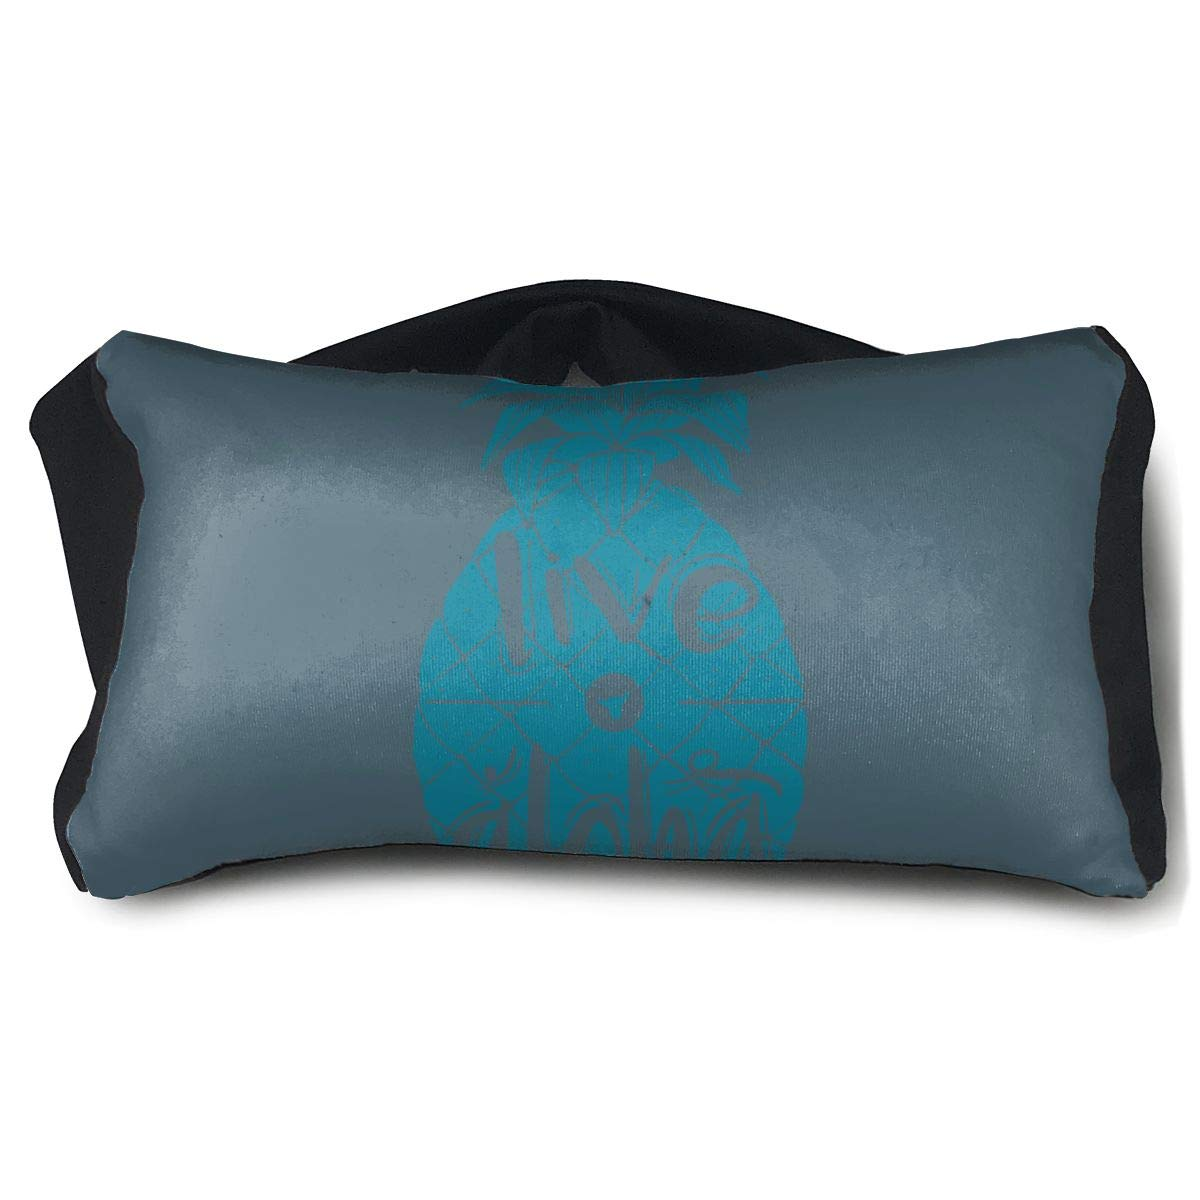 Amazon.com: EYE0Tp 2 in 1 Head Support Travel Pillow with ...